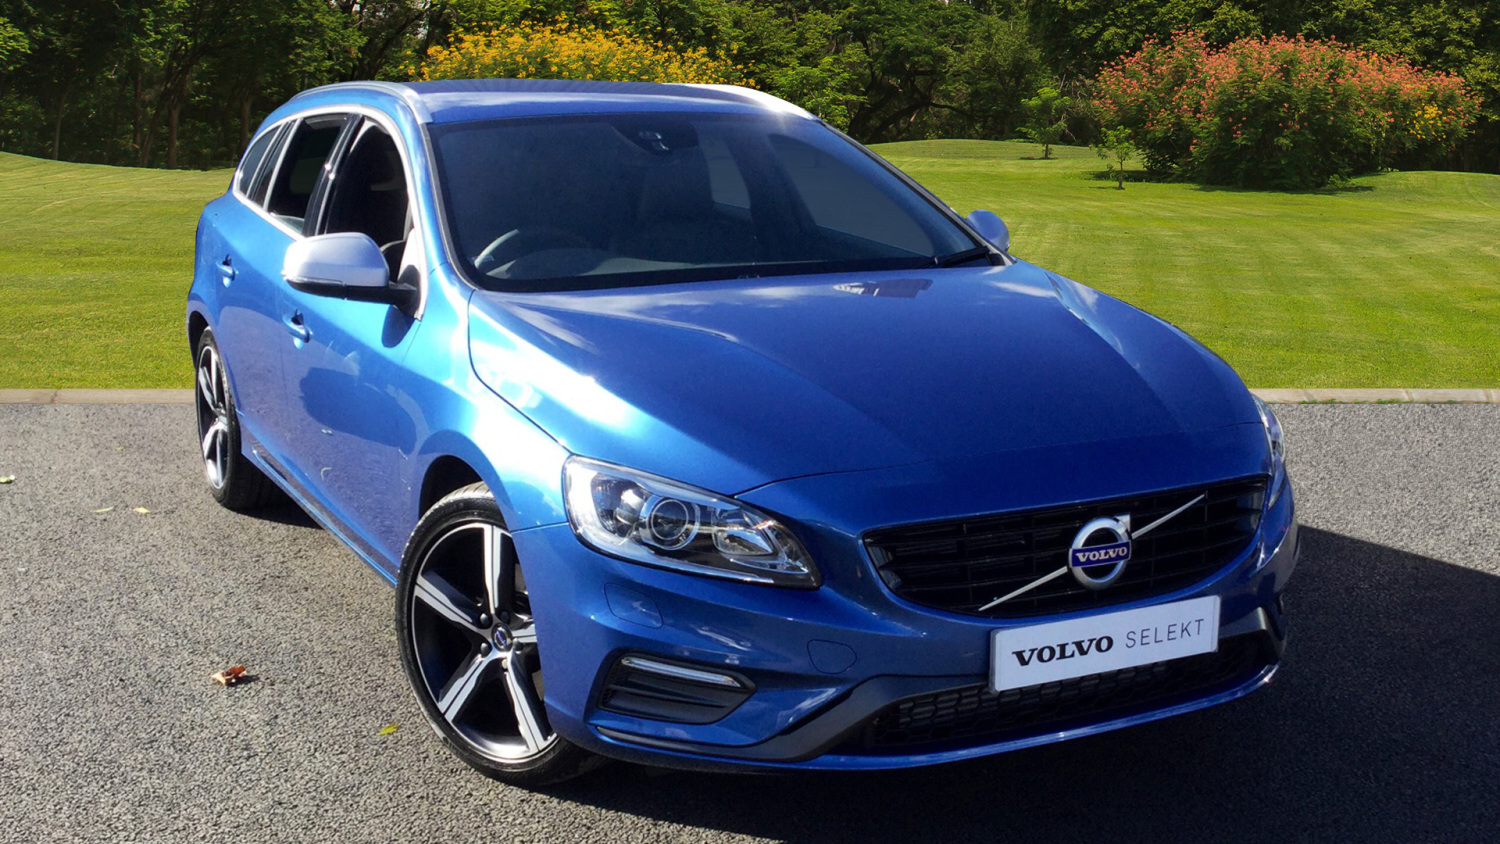 used volvo v60 d4 190 r design lux nav 5dr geartronic ltr diesel estate for sale bristol. Black Bedroom Furniture Sets. Home Design Ideas